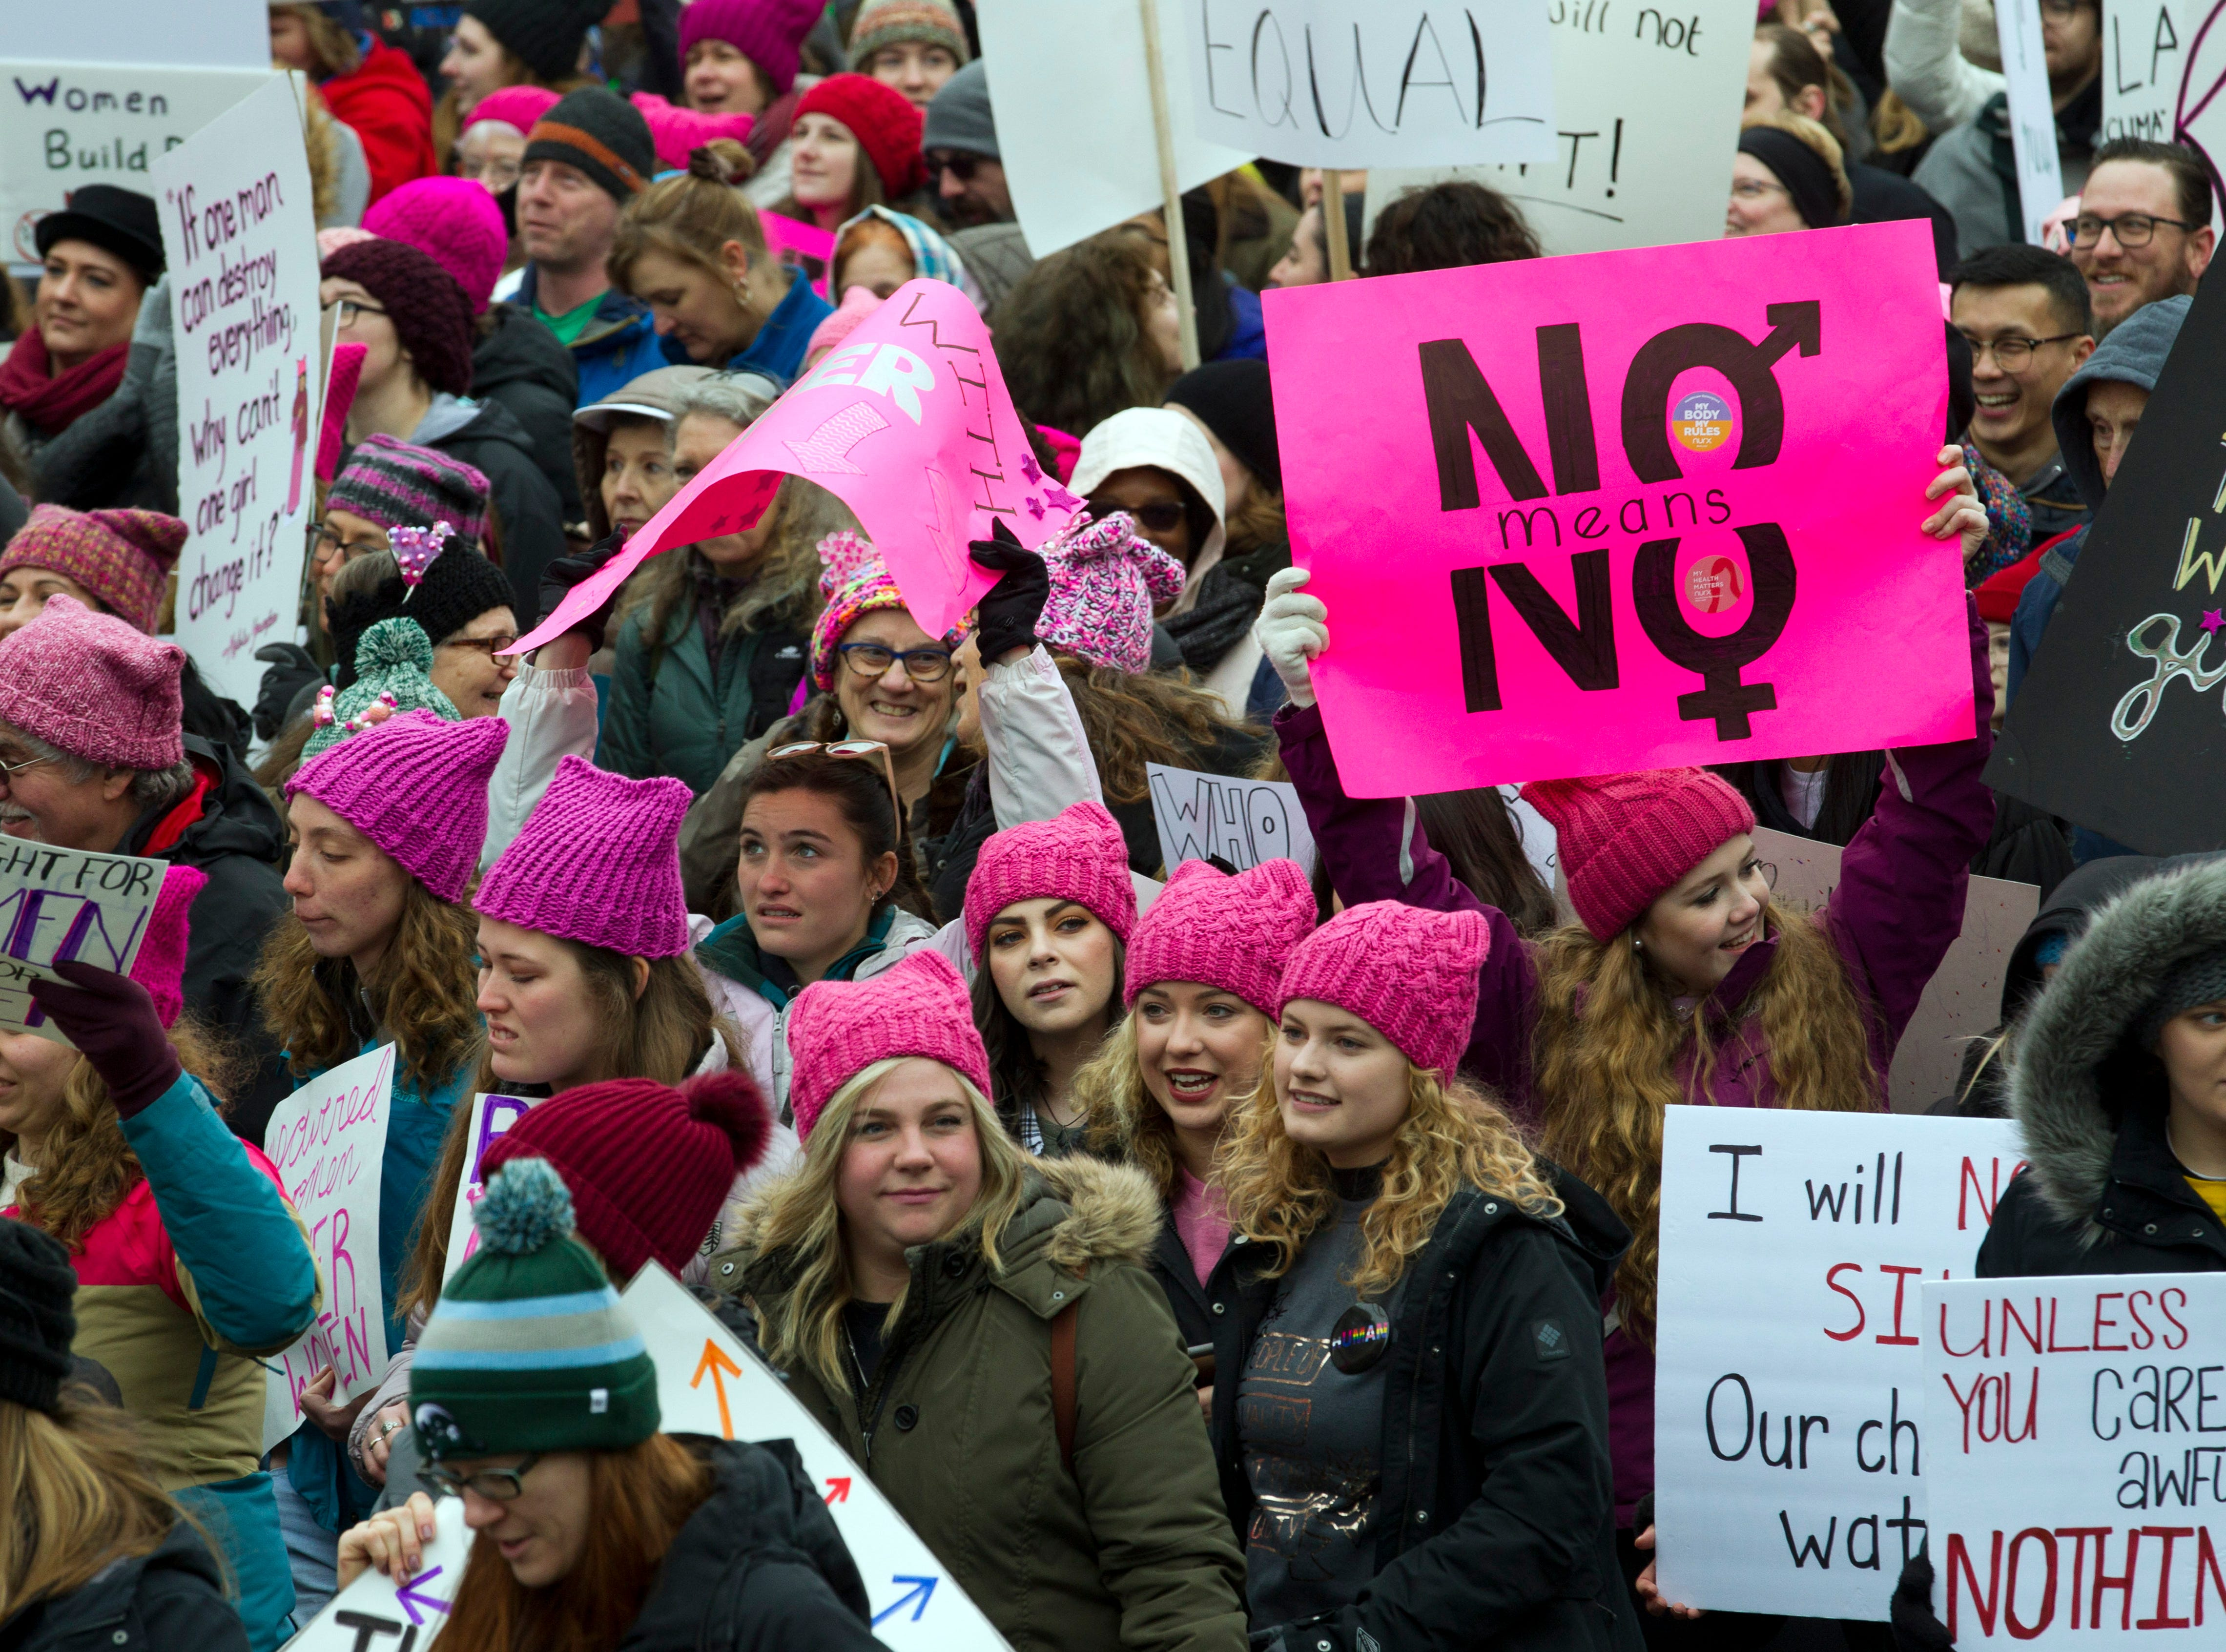 Demonstrators hold banners as they march on Pennsylvania Avenue during the Women's March in Washington on Saturday, Jan. 19, 2019.